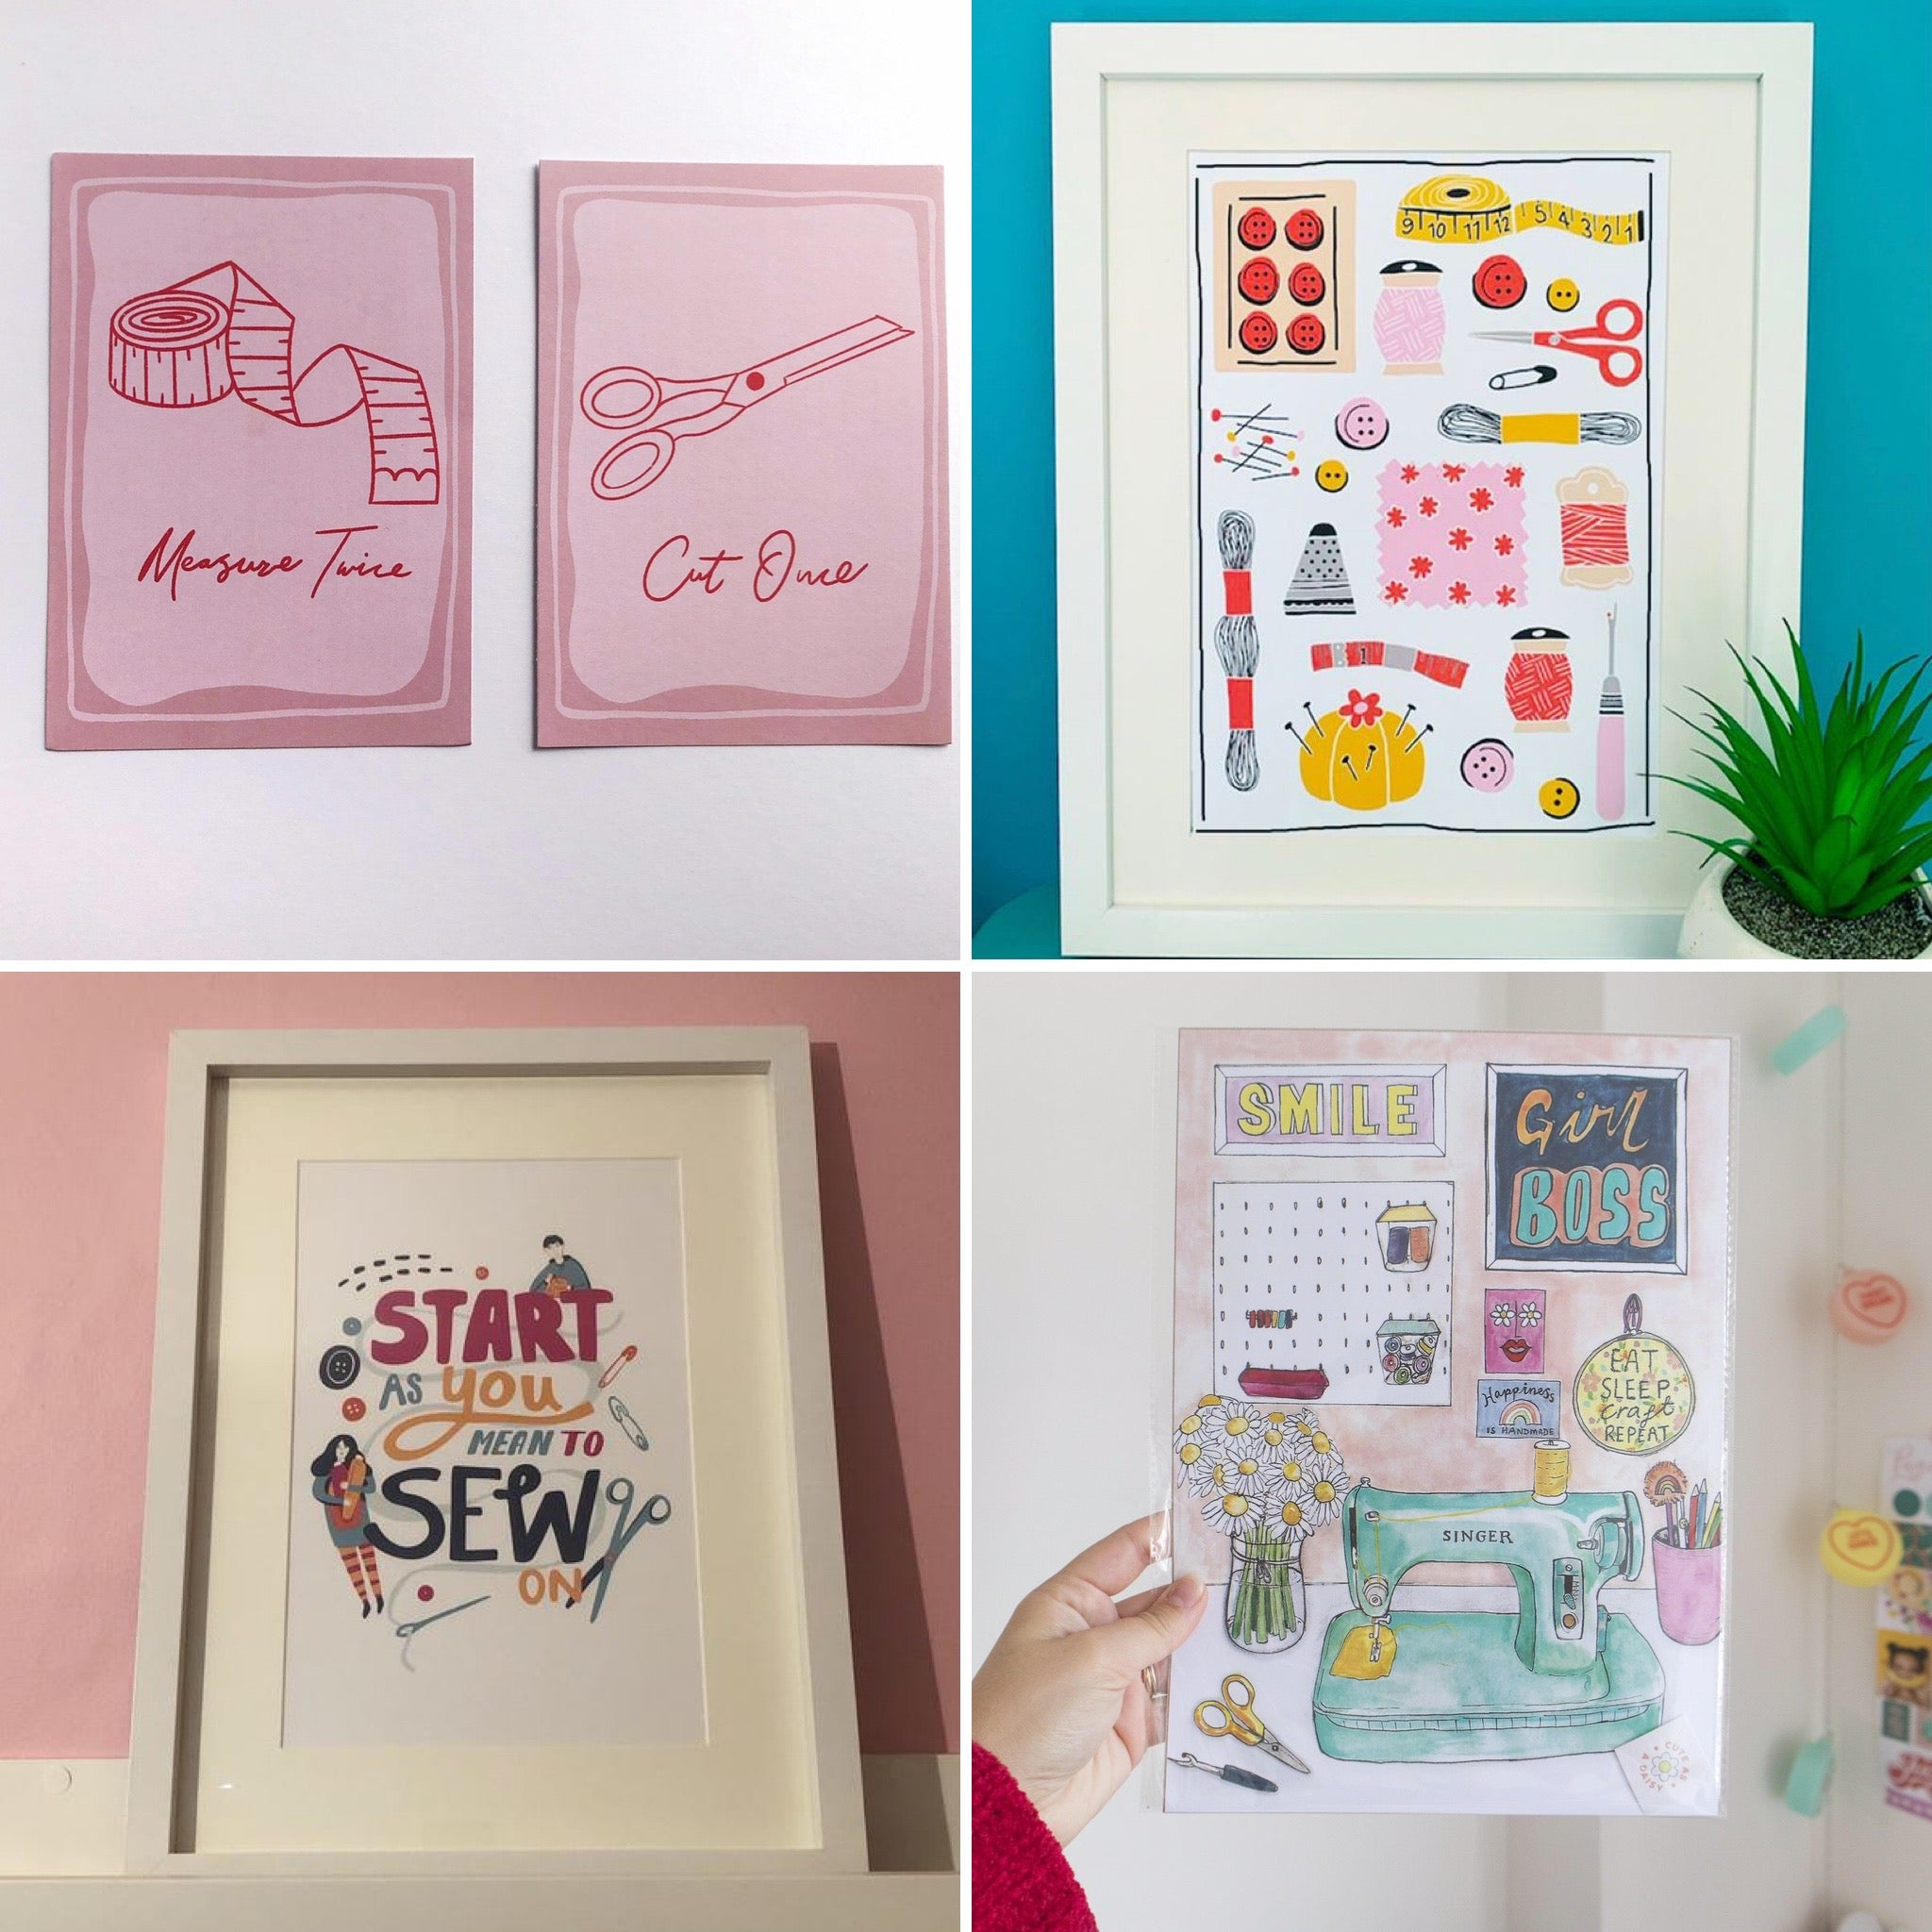 Sewing themed art prints